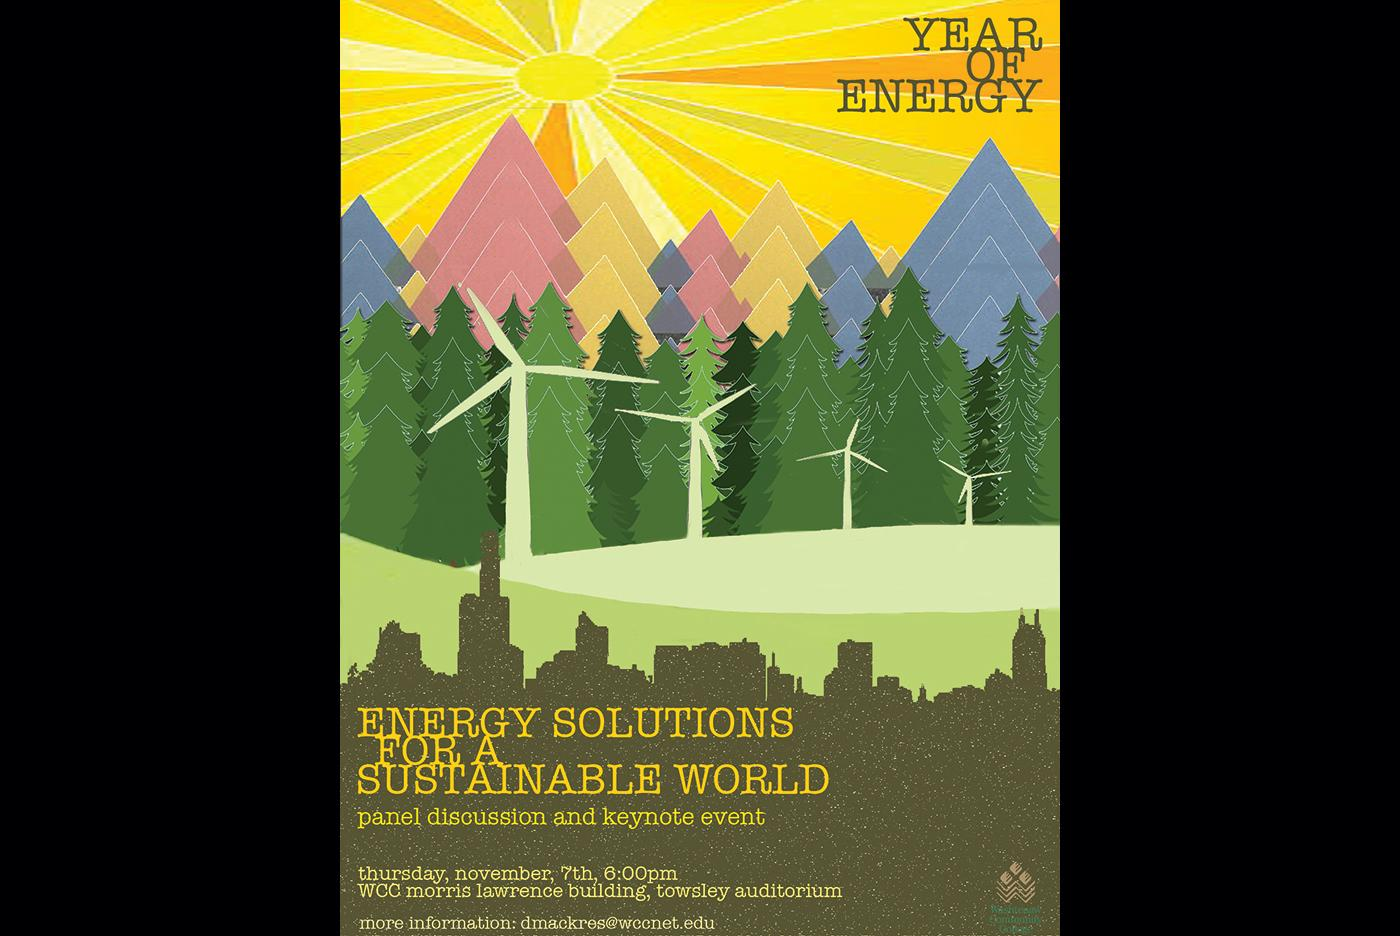 Year of Energy poster (c) Beall & Stenberg